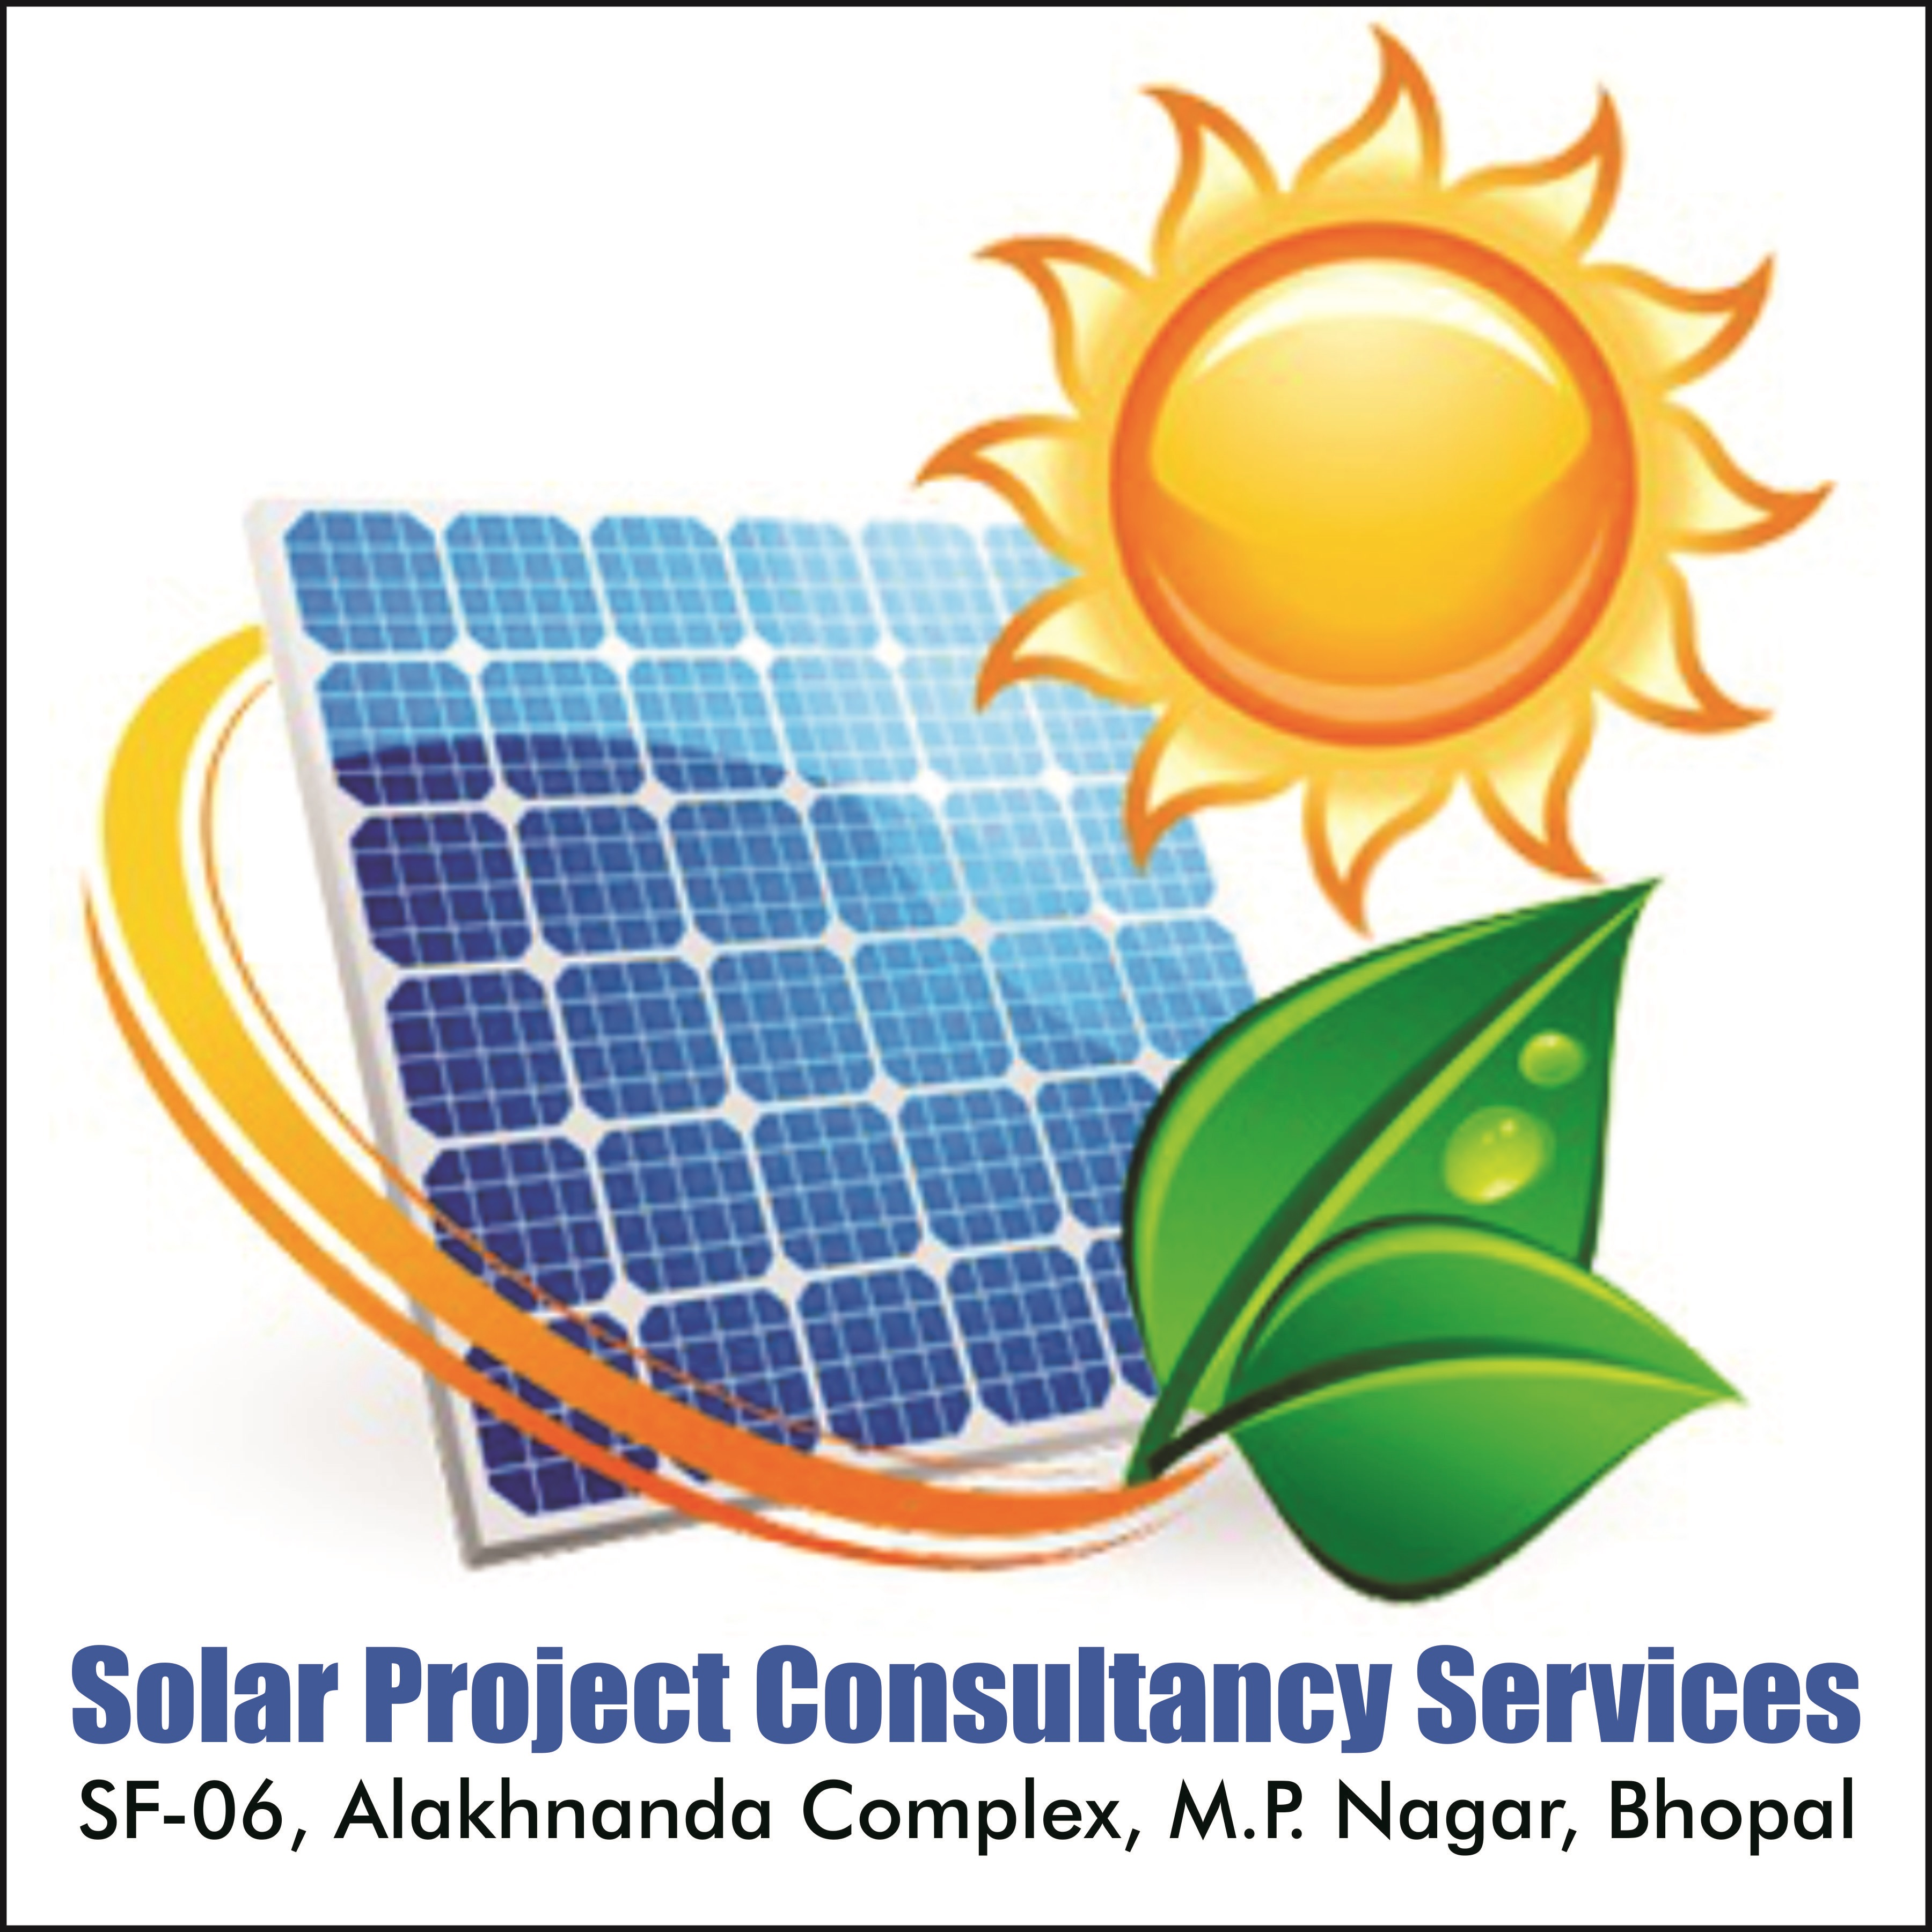 Solar Project Consultancy Services